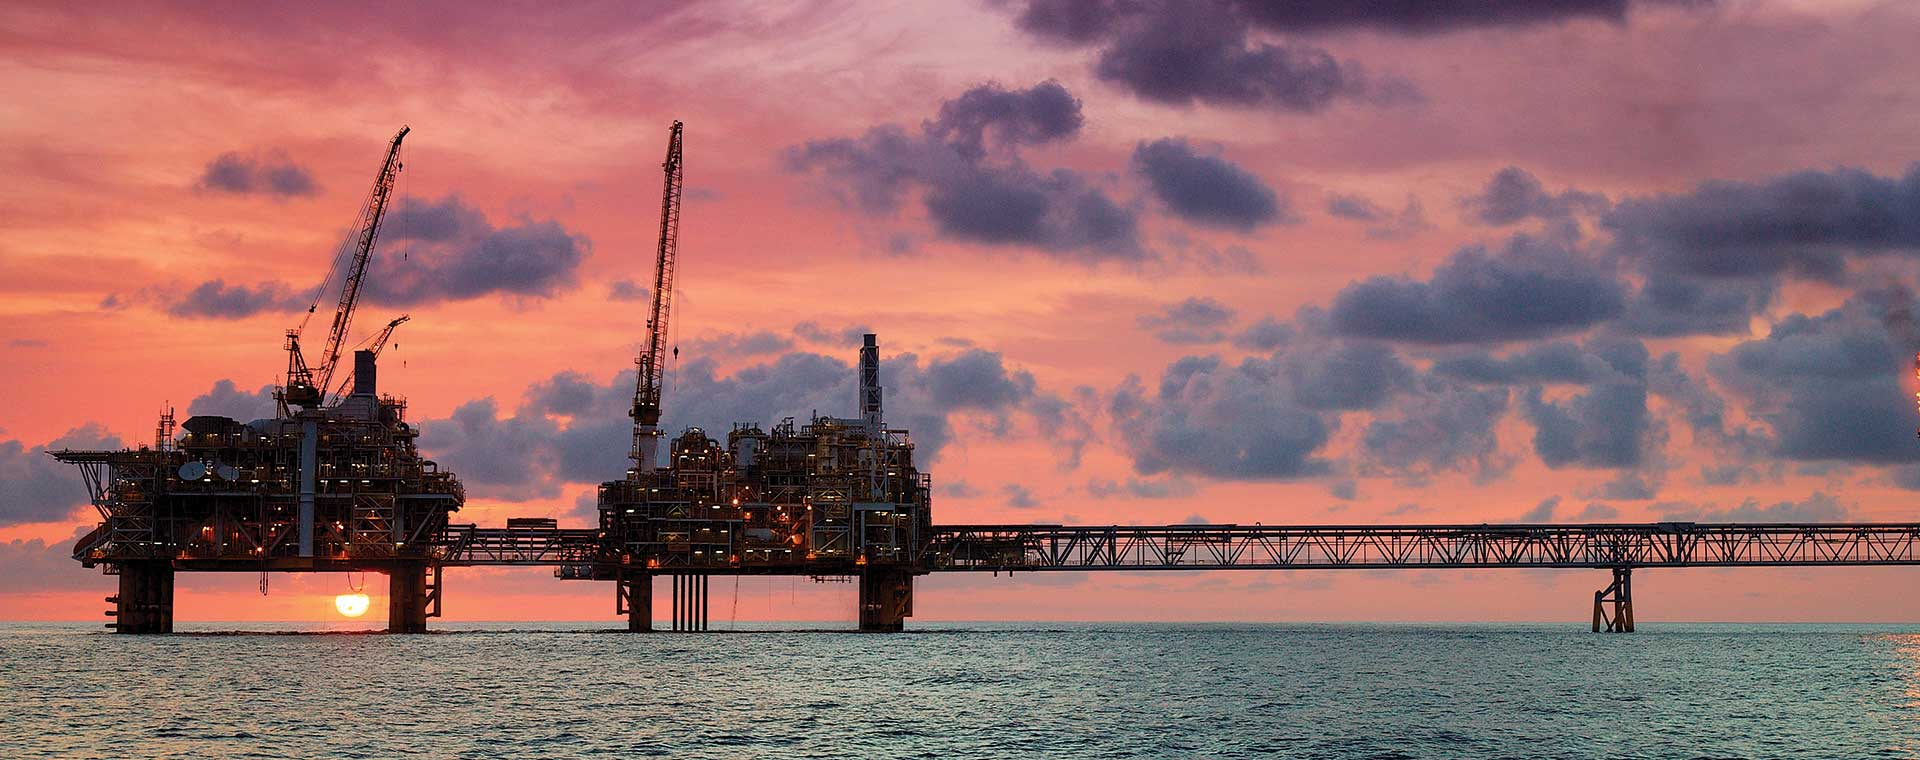 Offshore platforms at sunset